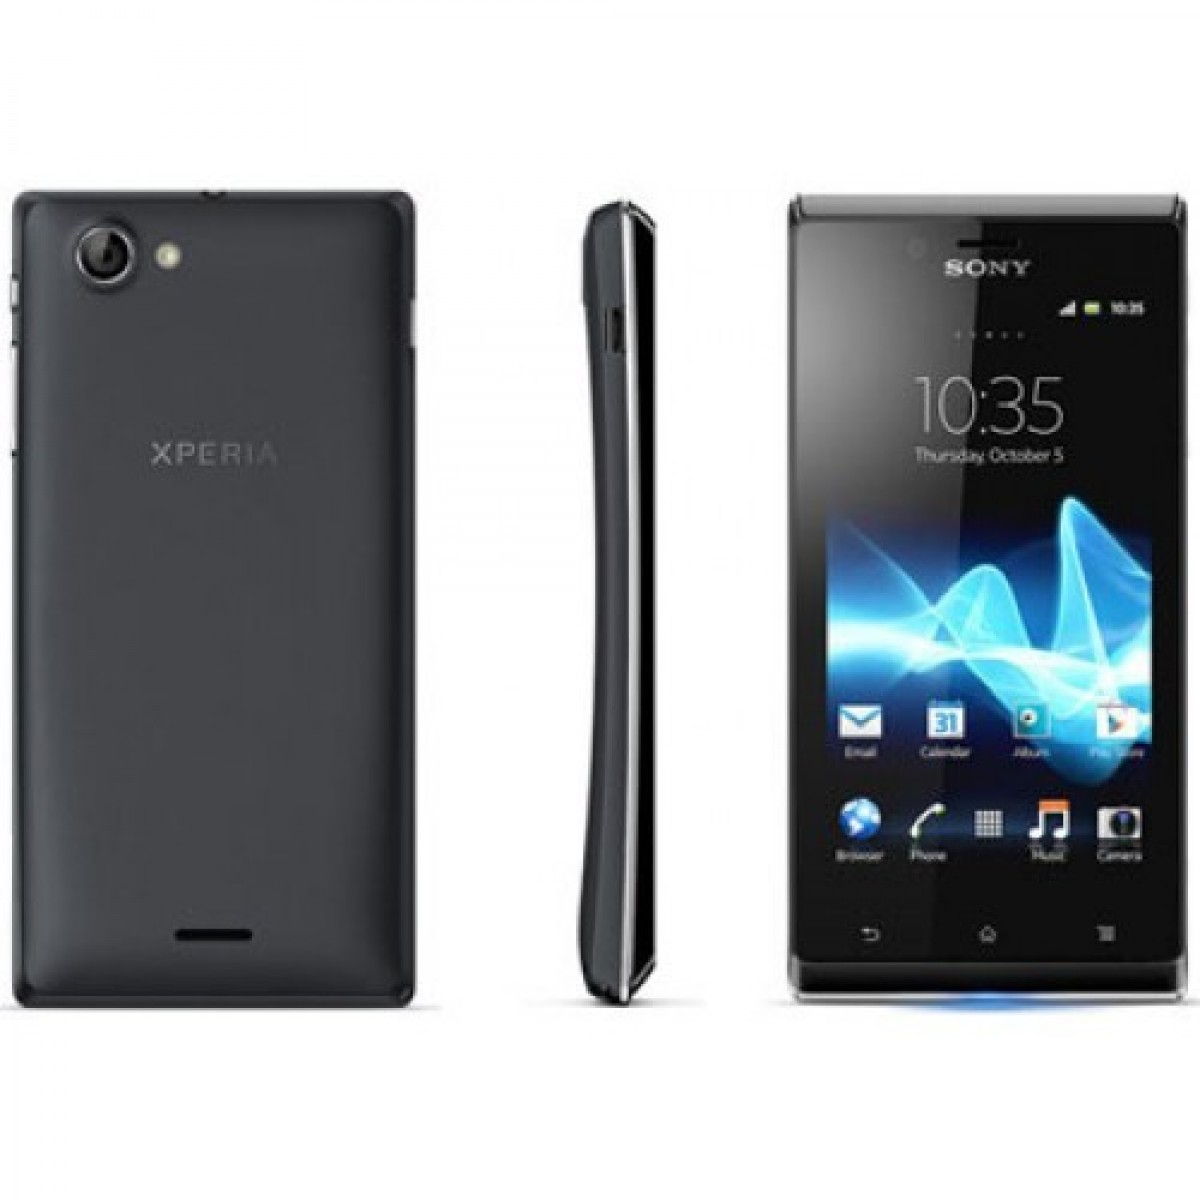 All Phone Software: Sony Xperia J ST26i Stock Rom/Official Firmware